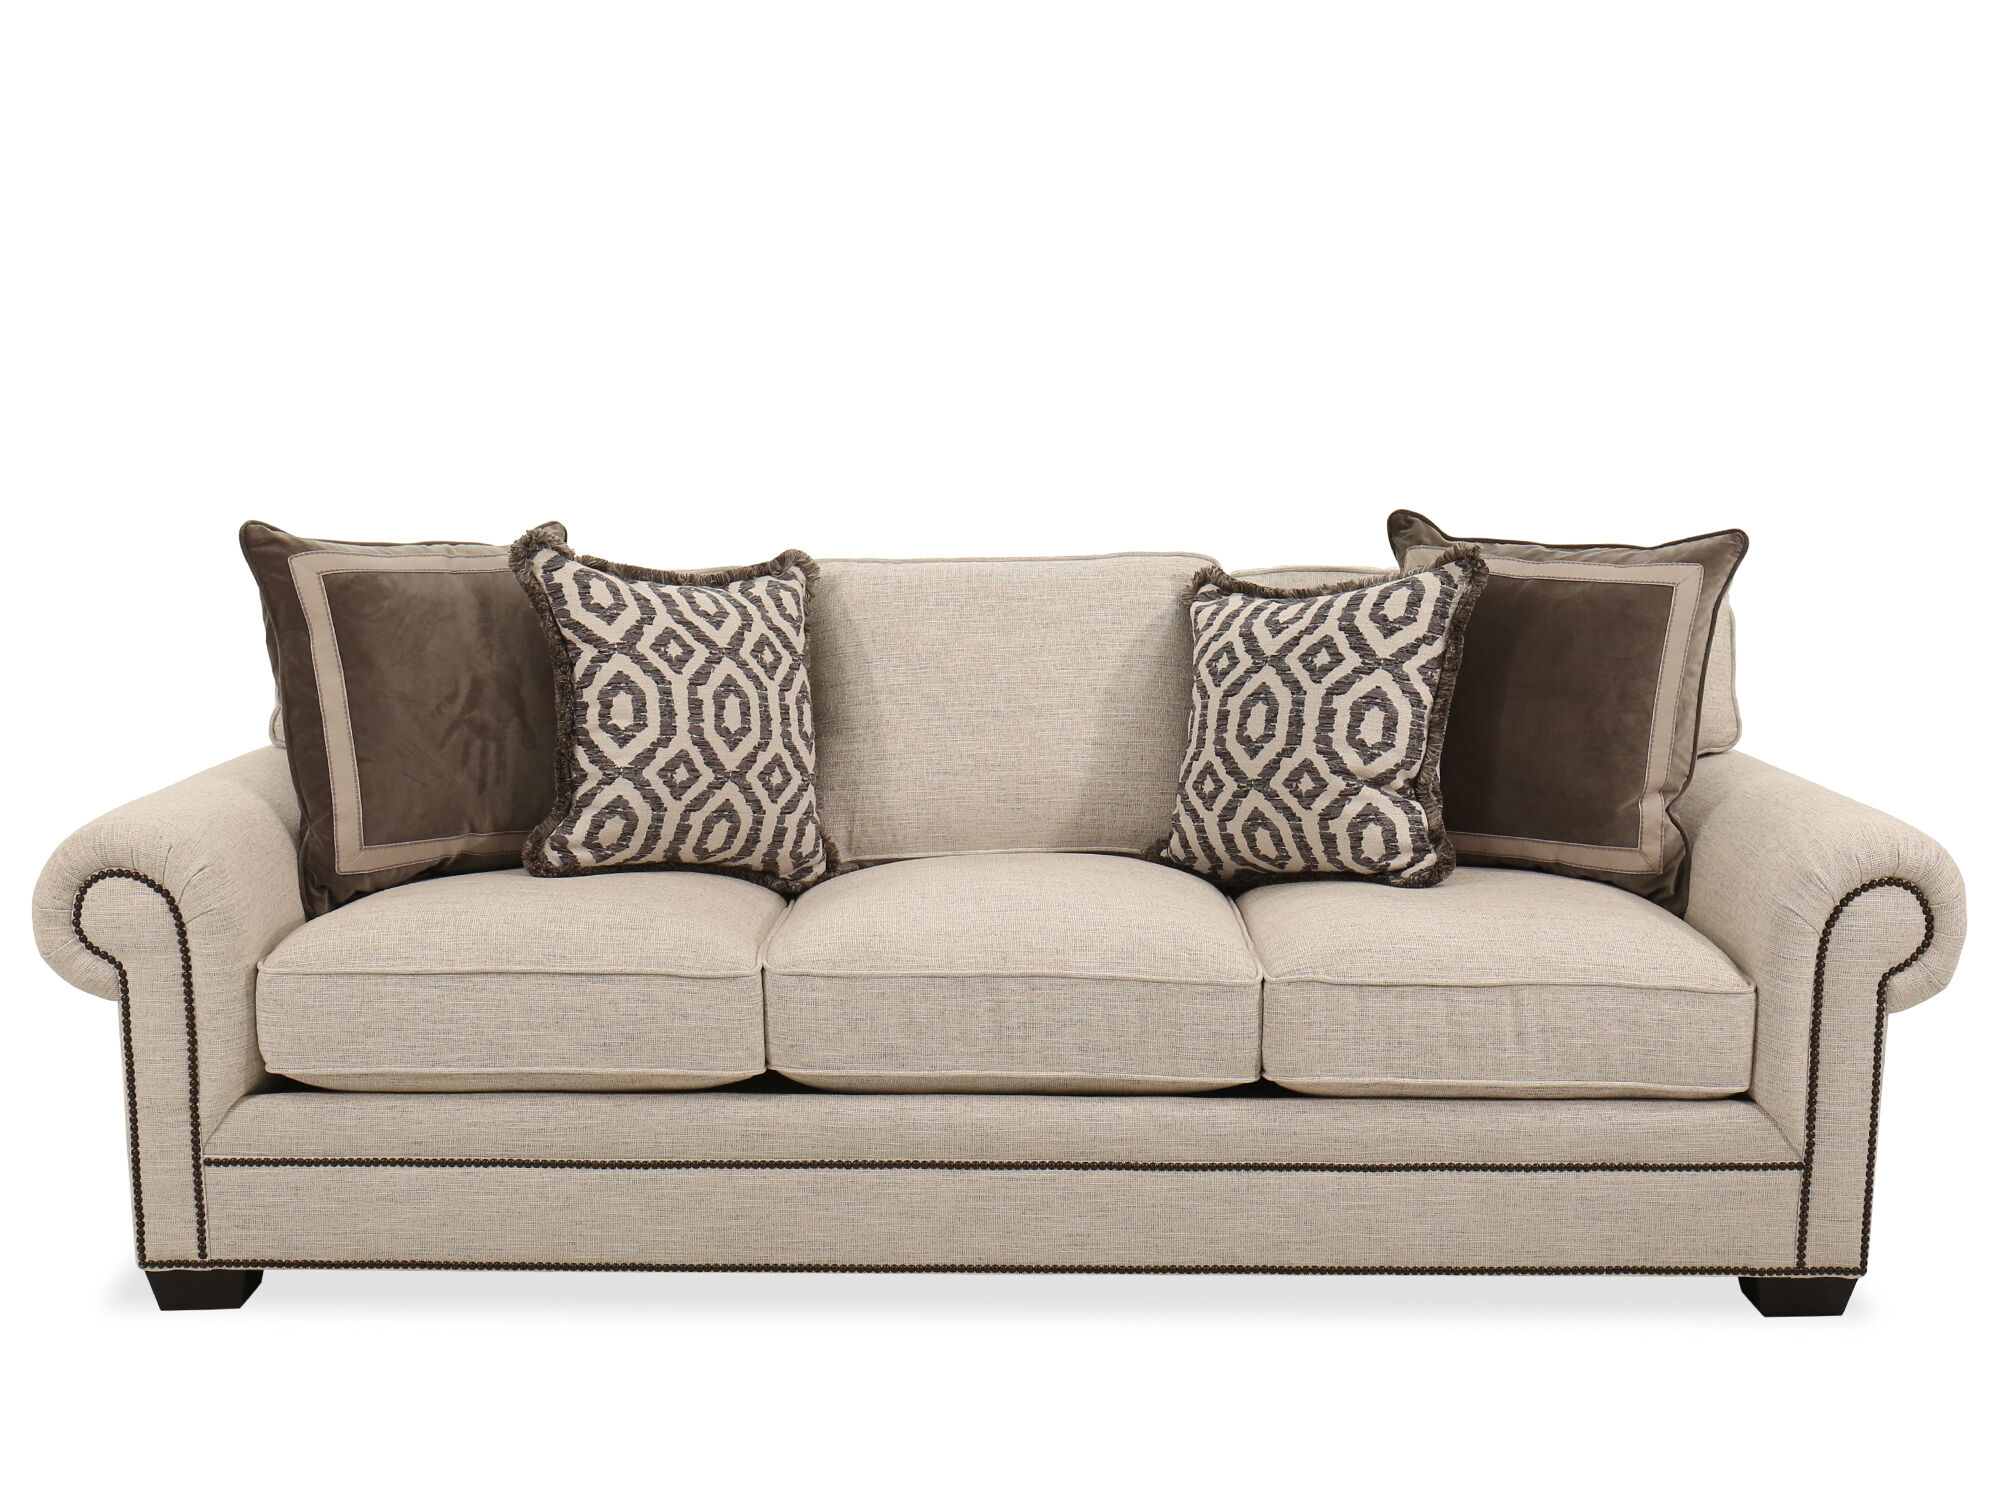 Focus On Furniture Sofa Bed Contemporary 99 5